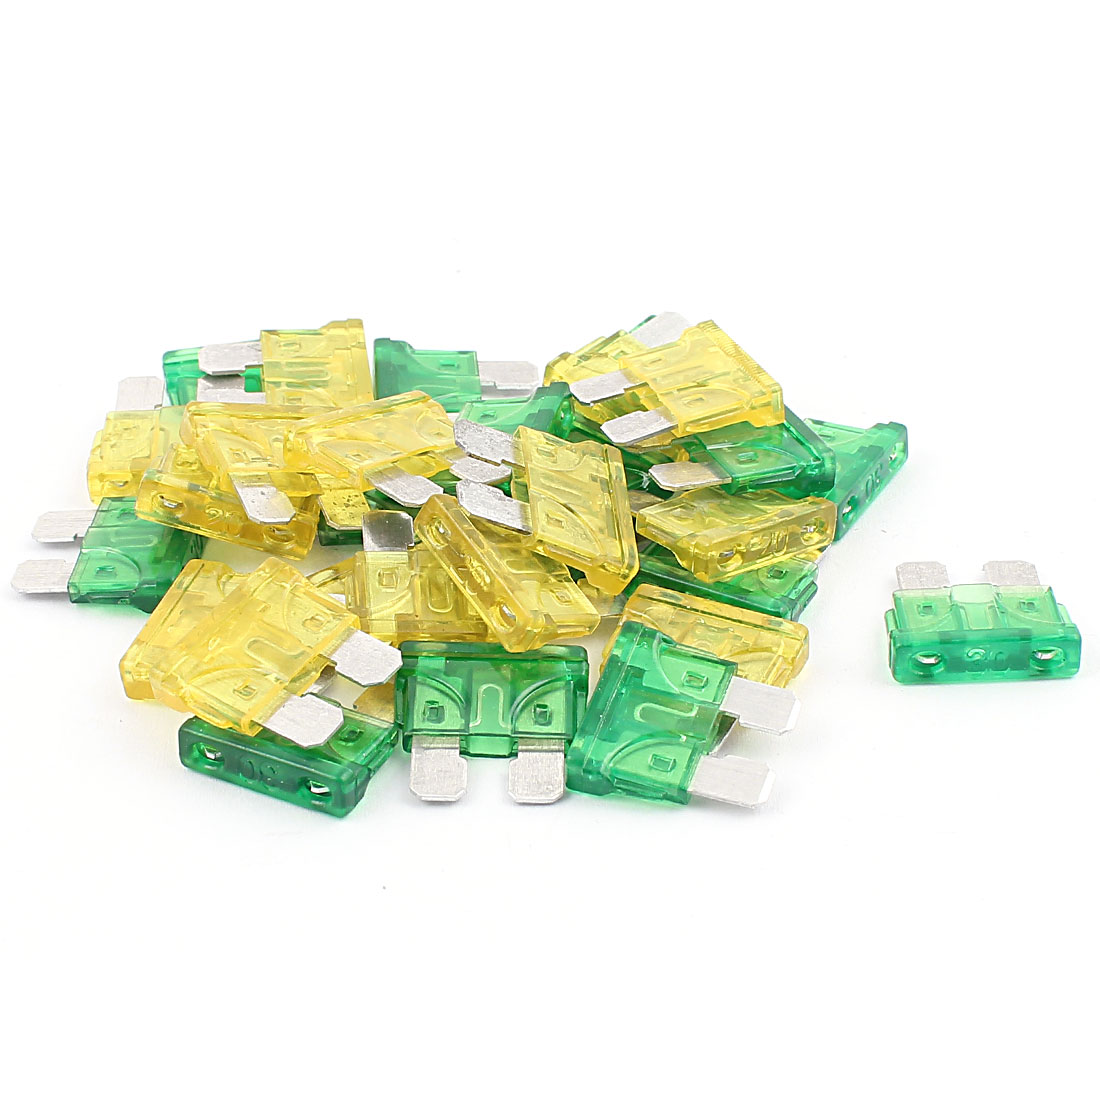 30pcs Yellow Green 30A 20A Plastic Case Mini Blade Fuse for Car Caravan Vehicle Motorbike SUV